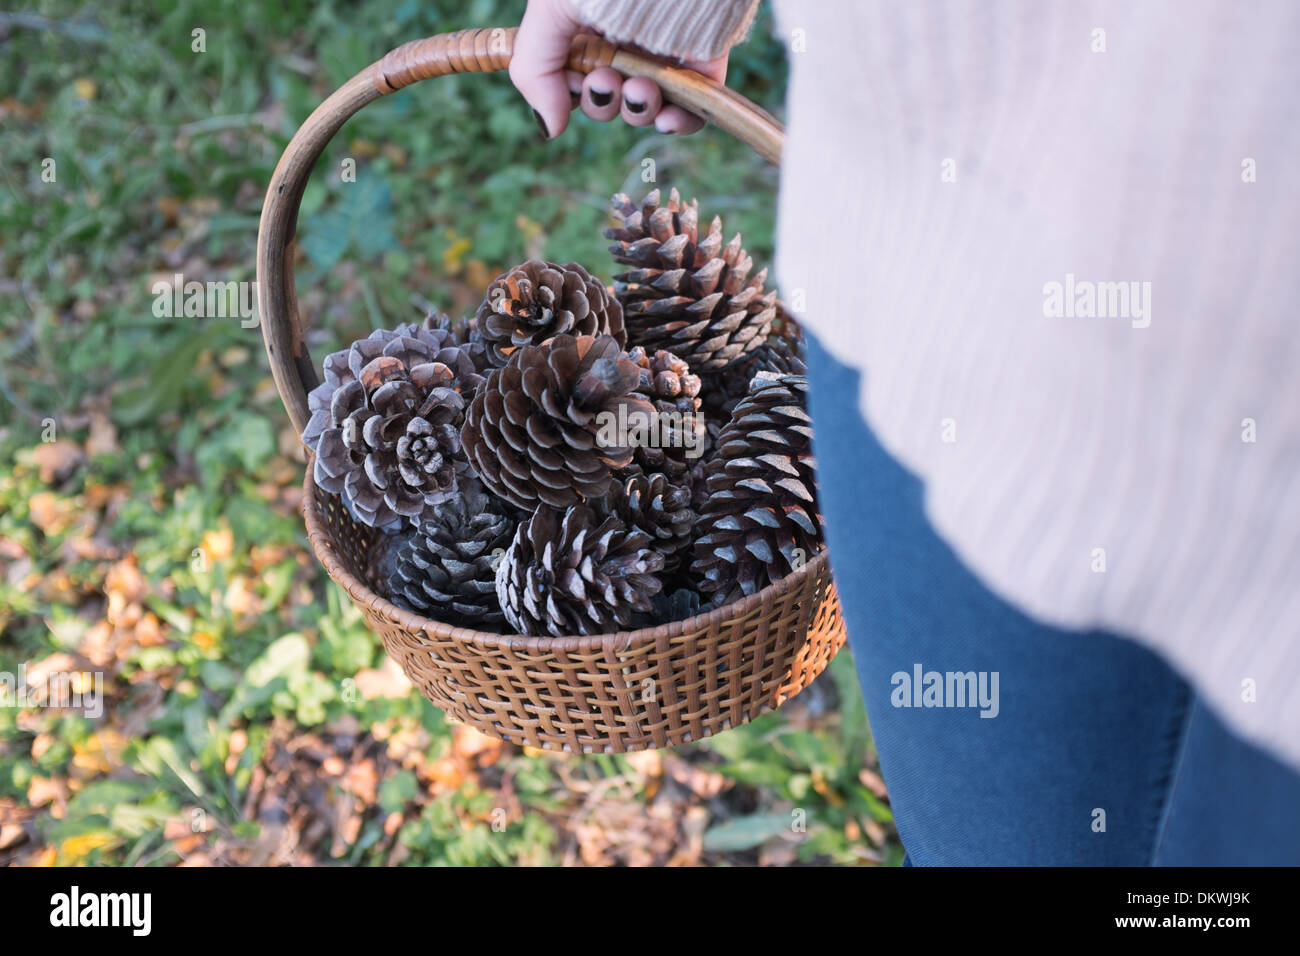 Collecting pine cones in forest - Stock Image